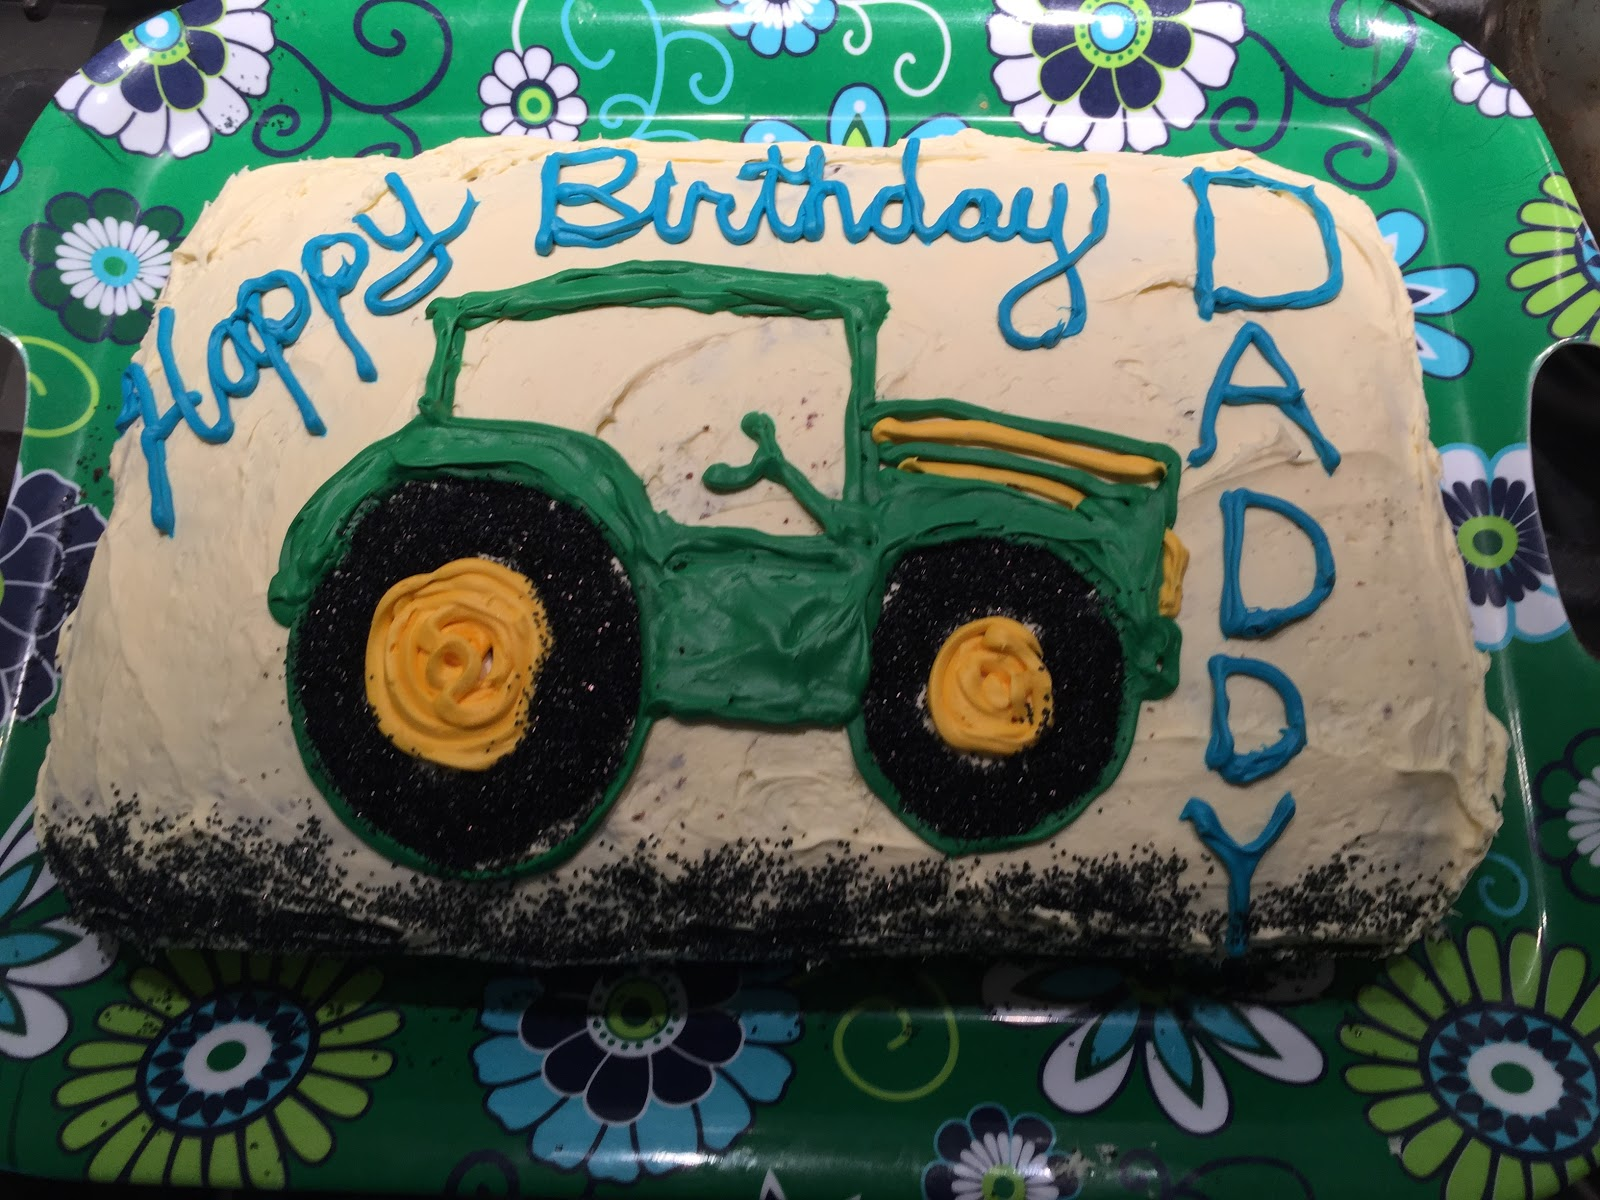 Yellow dog green life happy birthday james cece requested a tractor cake for him we hired a babysitter and went out to sushi and then we woke up to snow happy birthday old man thecheapjerseys Gallery